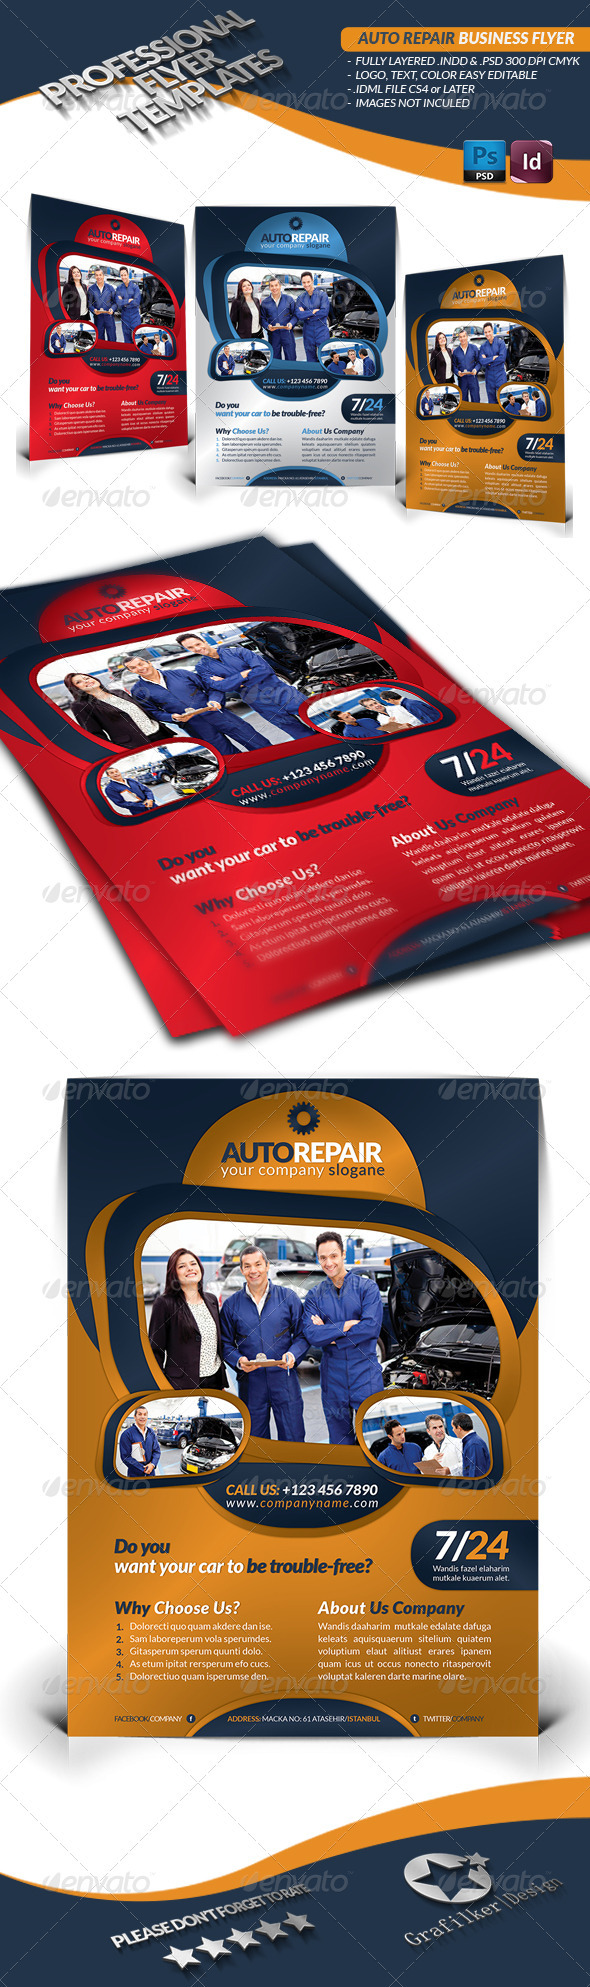 GraphicRiver Auto Repair Business Flyer 3489223